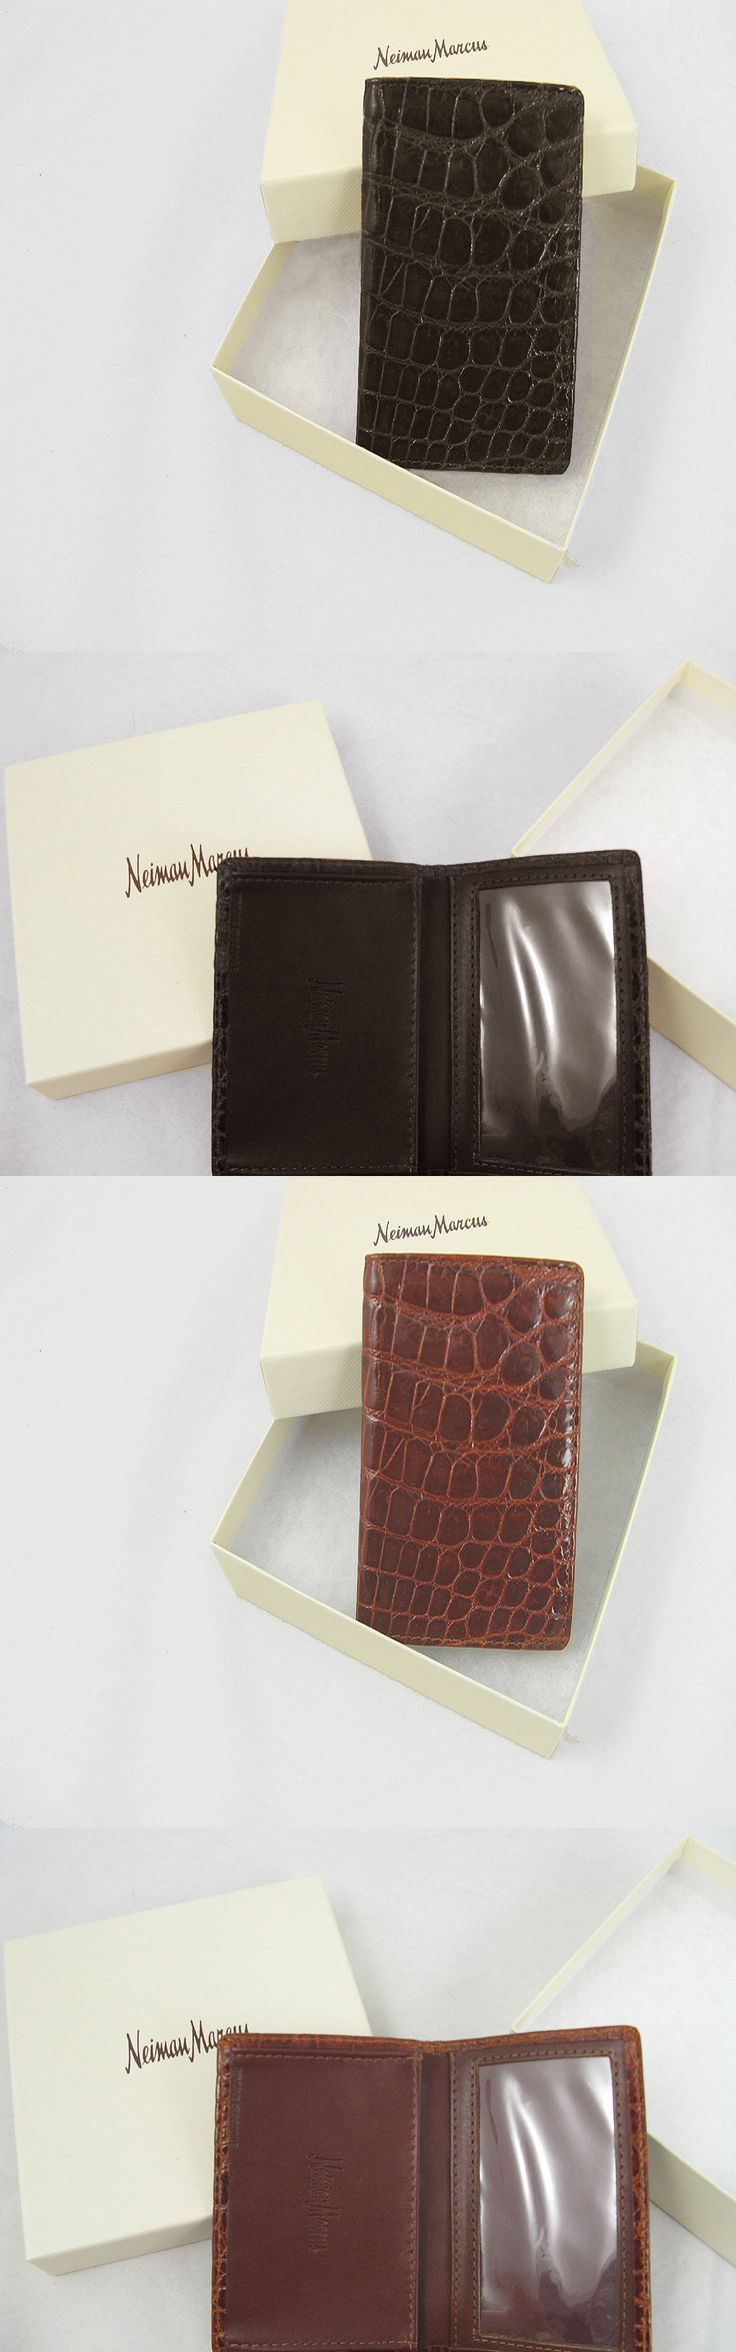 Business and Credit Card Cases 105860: New! Neiman Marcus Genuine Crocodile Business Card Holder! *Brown Or Rust* -> BUY IT NOW ONLY: $119.99 on eBay!